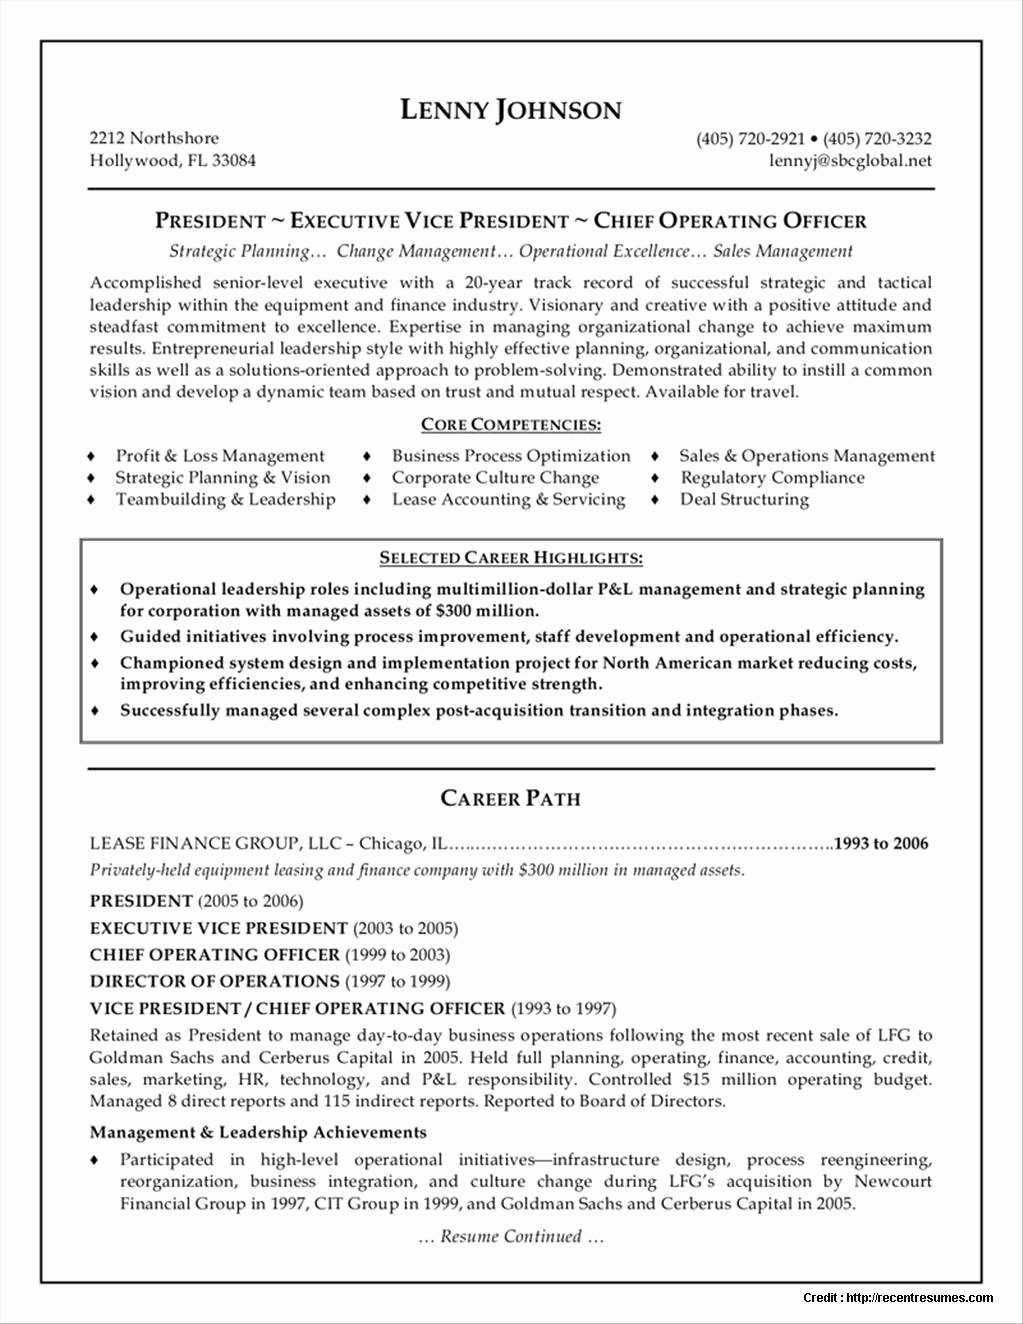 Top Executive Resume Examples Resume Resume Examples